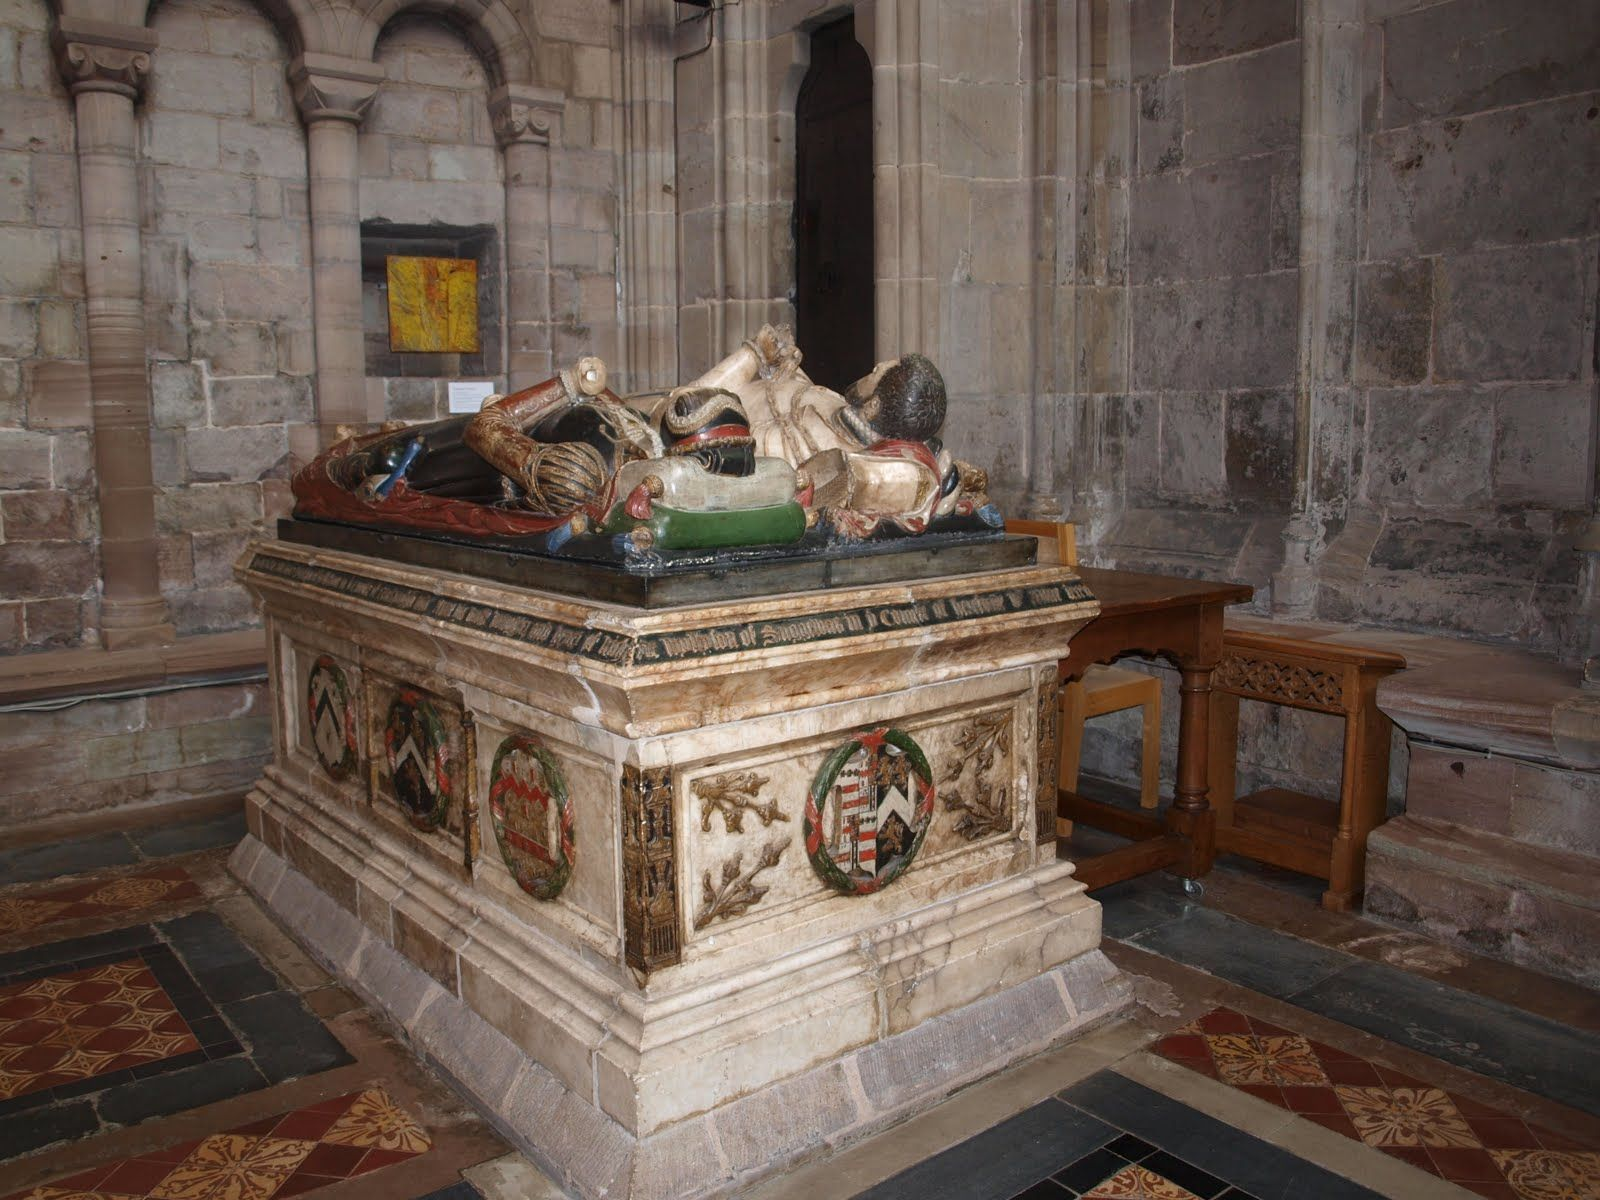 Denton tomb, Hereford Cathedral A tomb to Alexander Denton and wife Anne, née Wilson, C. 1566. Anne died in childbirth aged 18, her swaddled baby is shown. Alexander remarried Mary Martyn and died in 1576. He is buried in Hillesden, Bucks. Photo: RaggedRobinNotes Blog